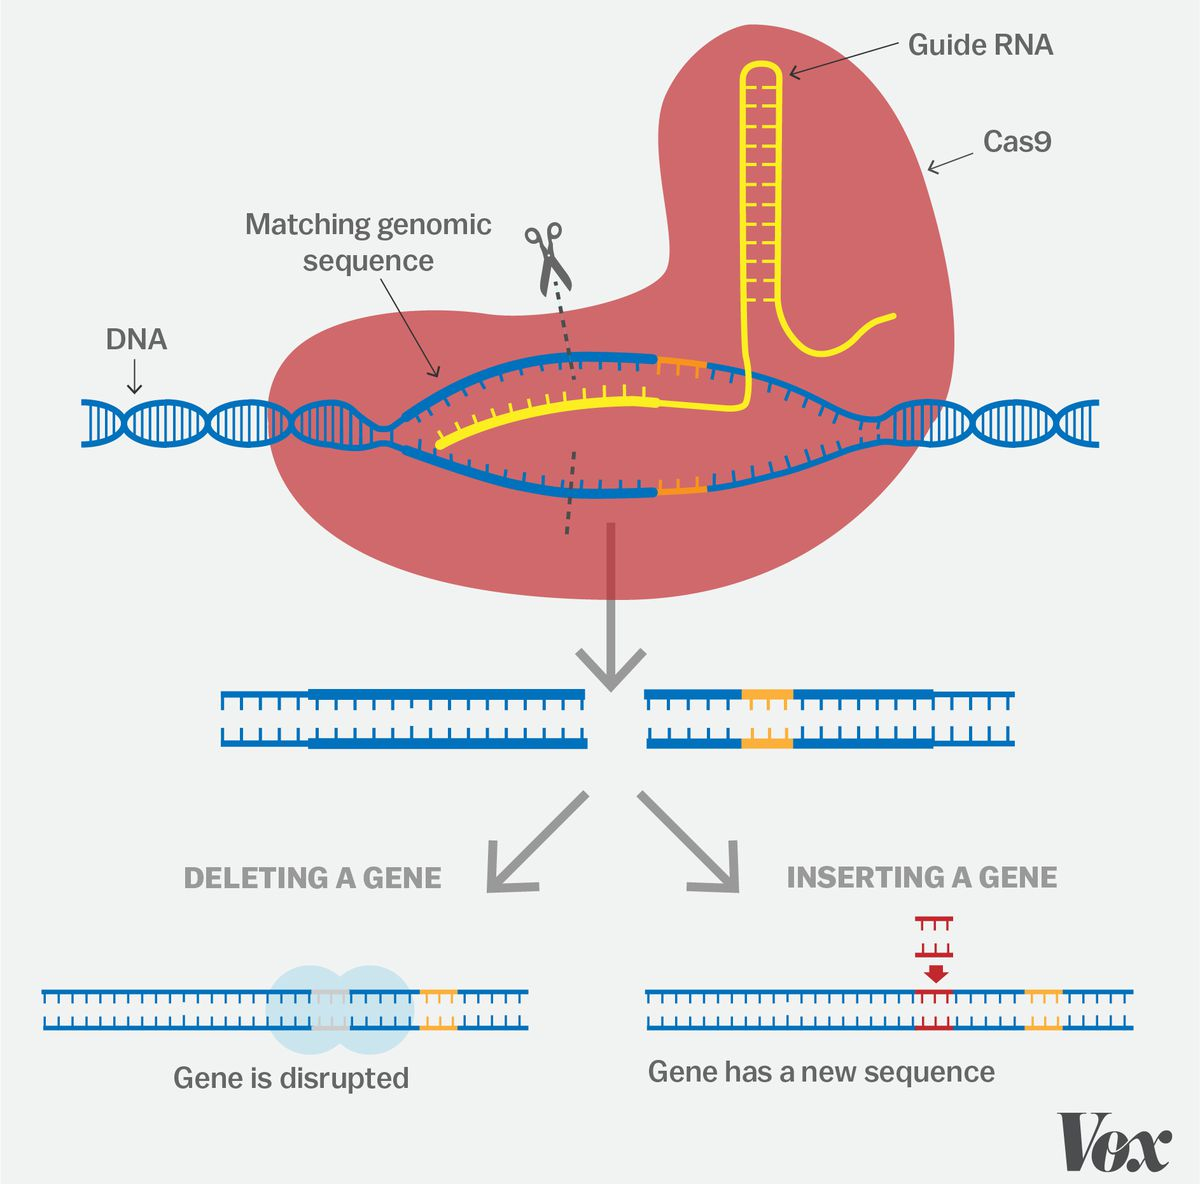 mechanism of disease genetics x clicics essay When a certain gene is known to cause a disease, we refer to it as a single gene   cell disease, fragile x syndrome, muscular dystrophy, or huntington disease.